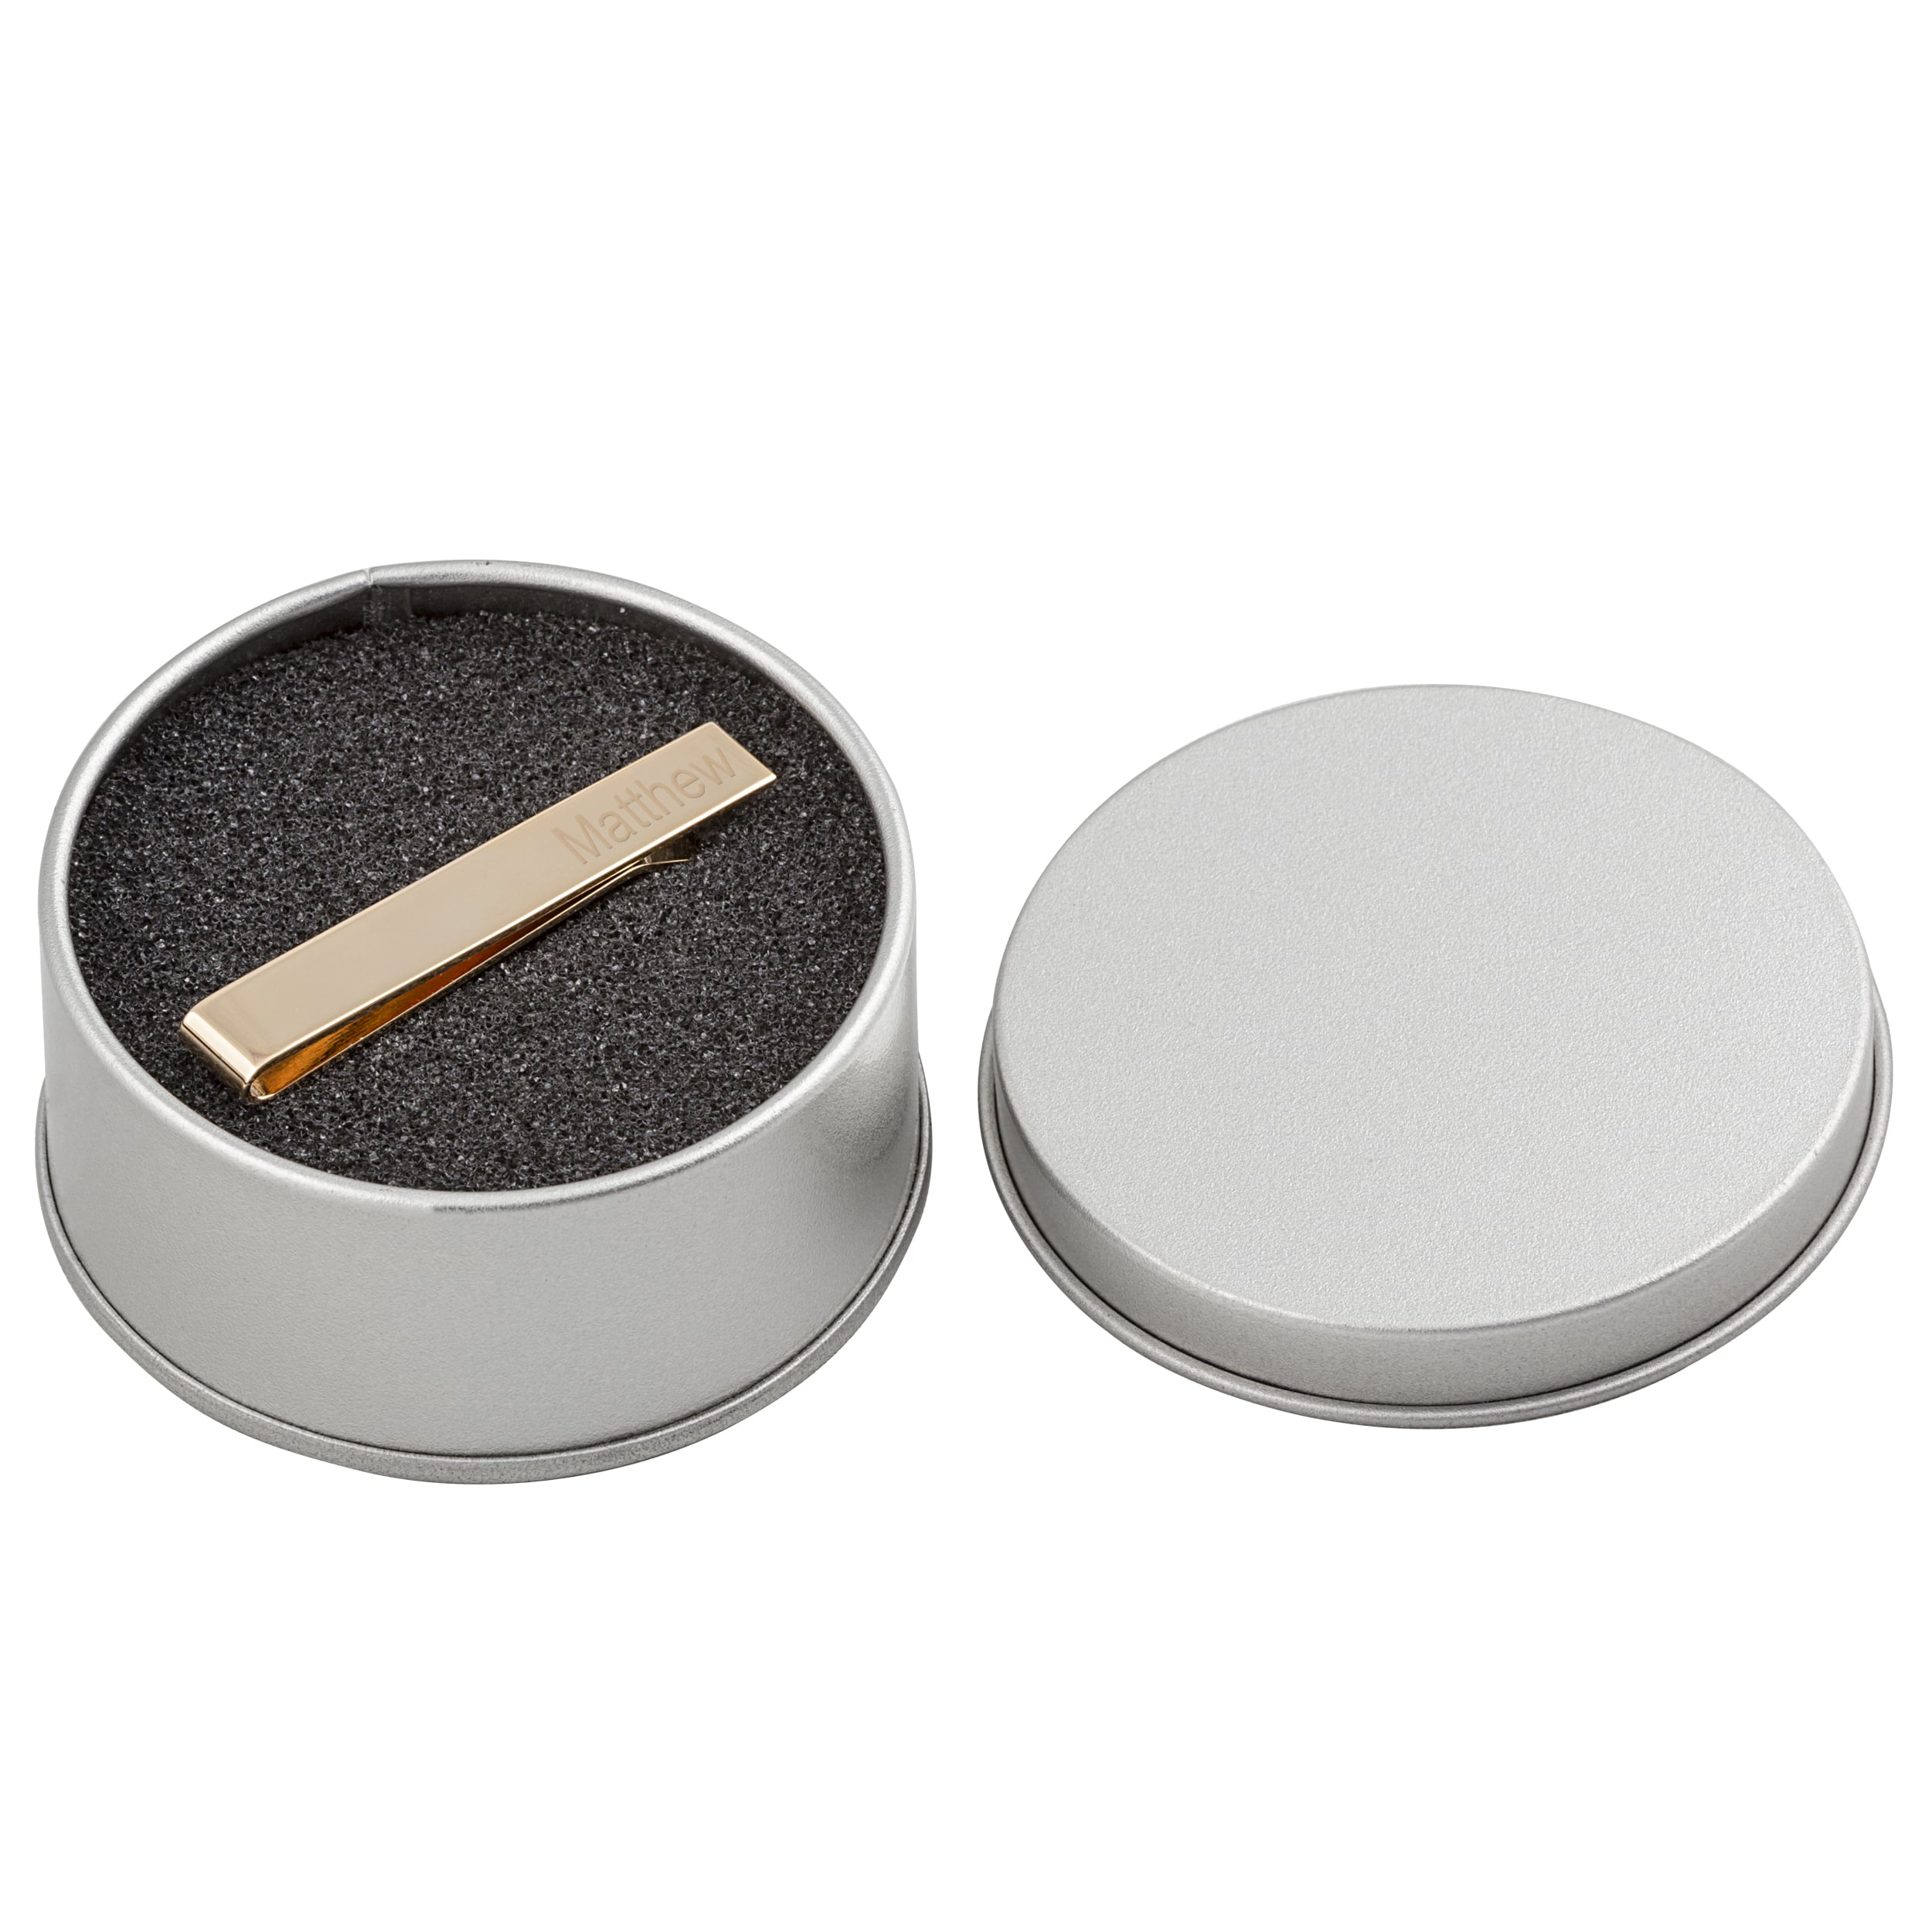 The tie clip arrives in a silver padded gift tin.